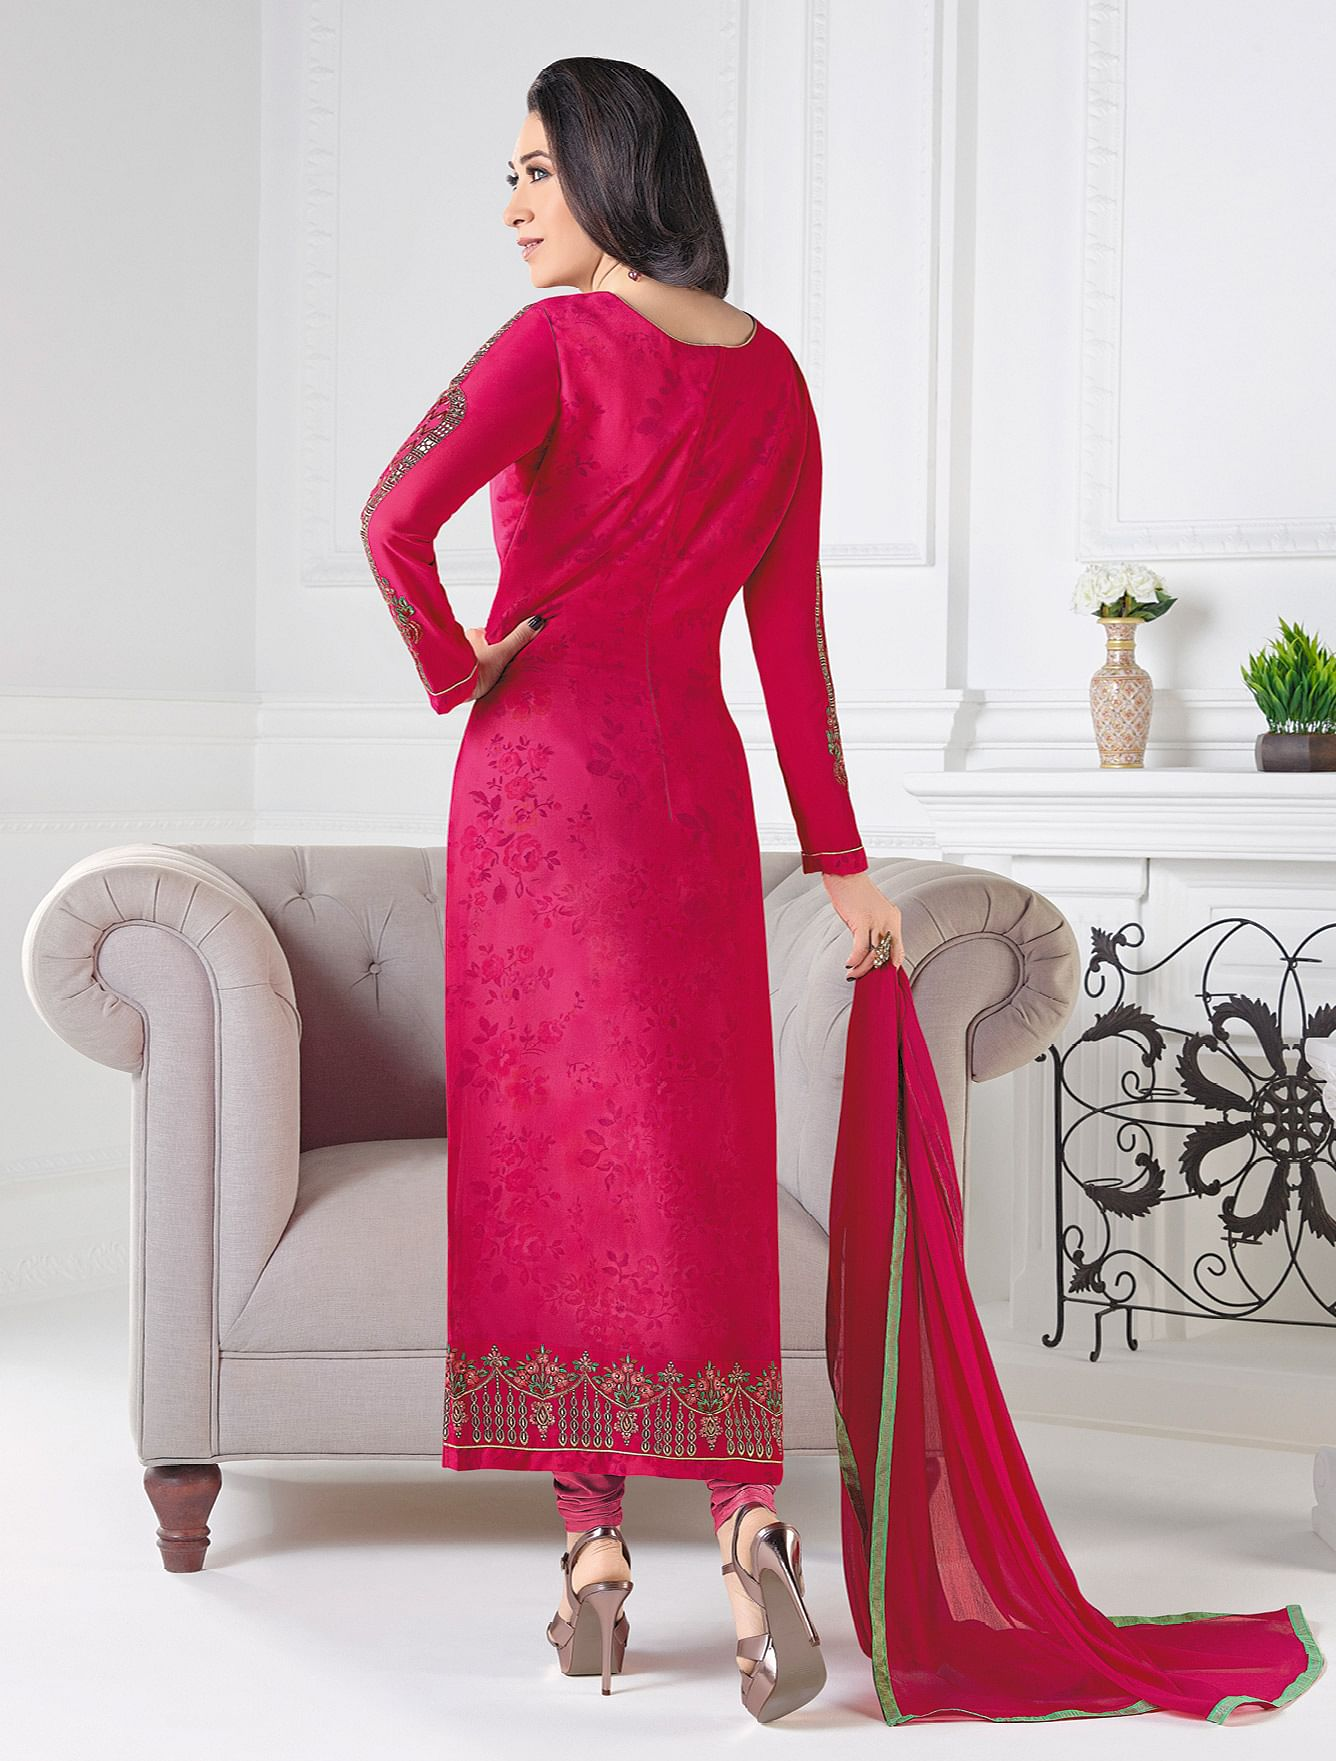 Lovely Rani Pink Designer Embroidered Faux Georgette Salwar Suit